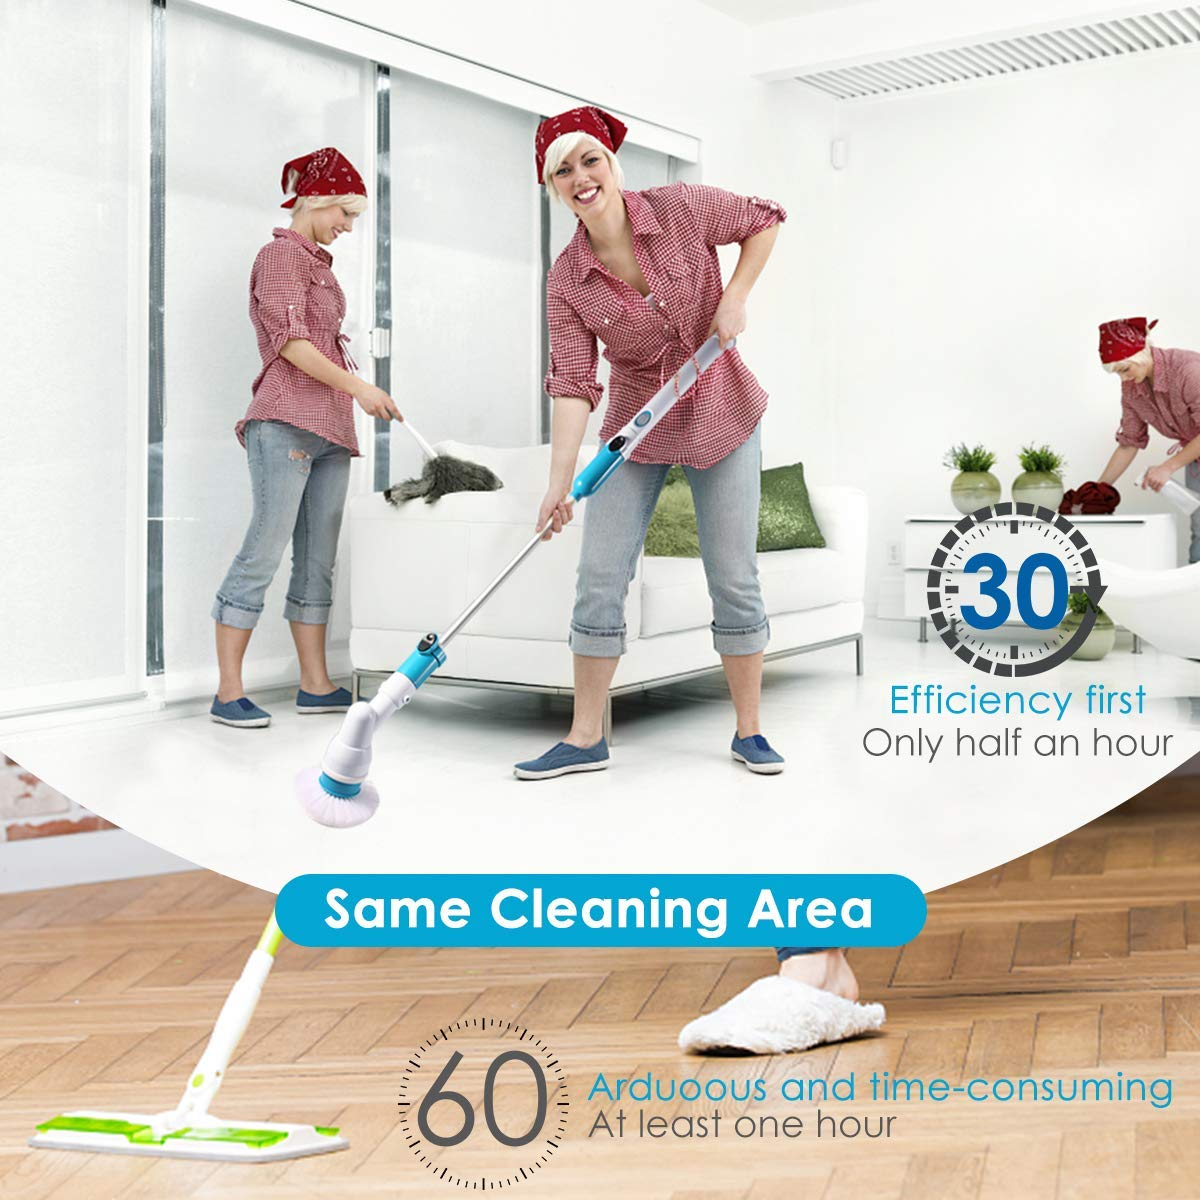 Spin Scrubber, 360 Cordless Tub and Tile Scrubber, Multi-Purpose Power Surface Cleaner with 3 Replaceable Cleaning Scrubber Brush Heads, 1 Extension Arm and Adapter by Bert (Image #3)